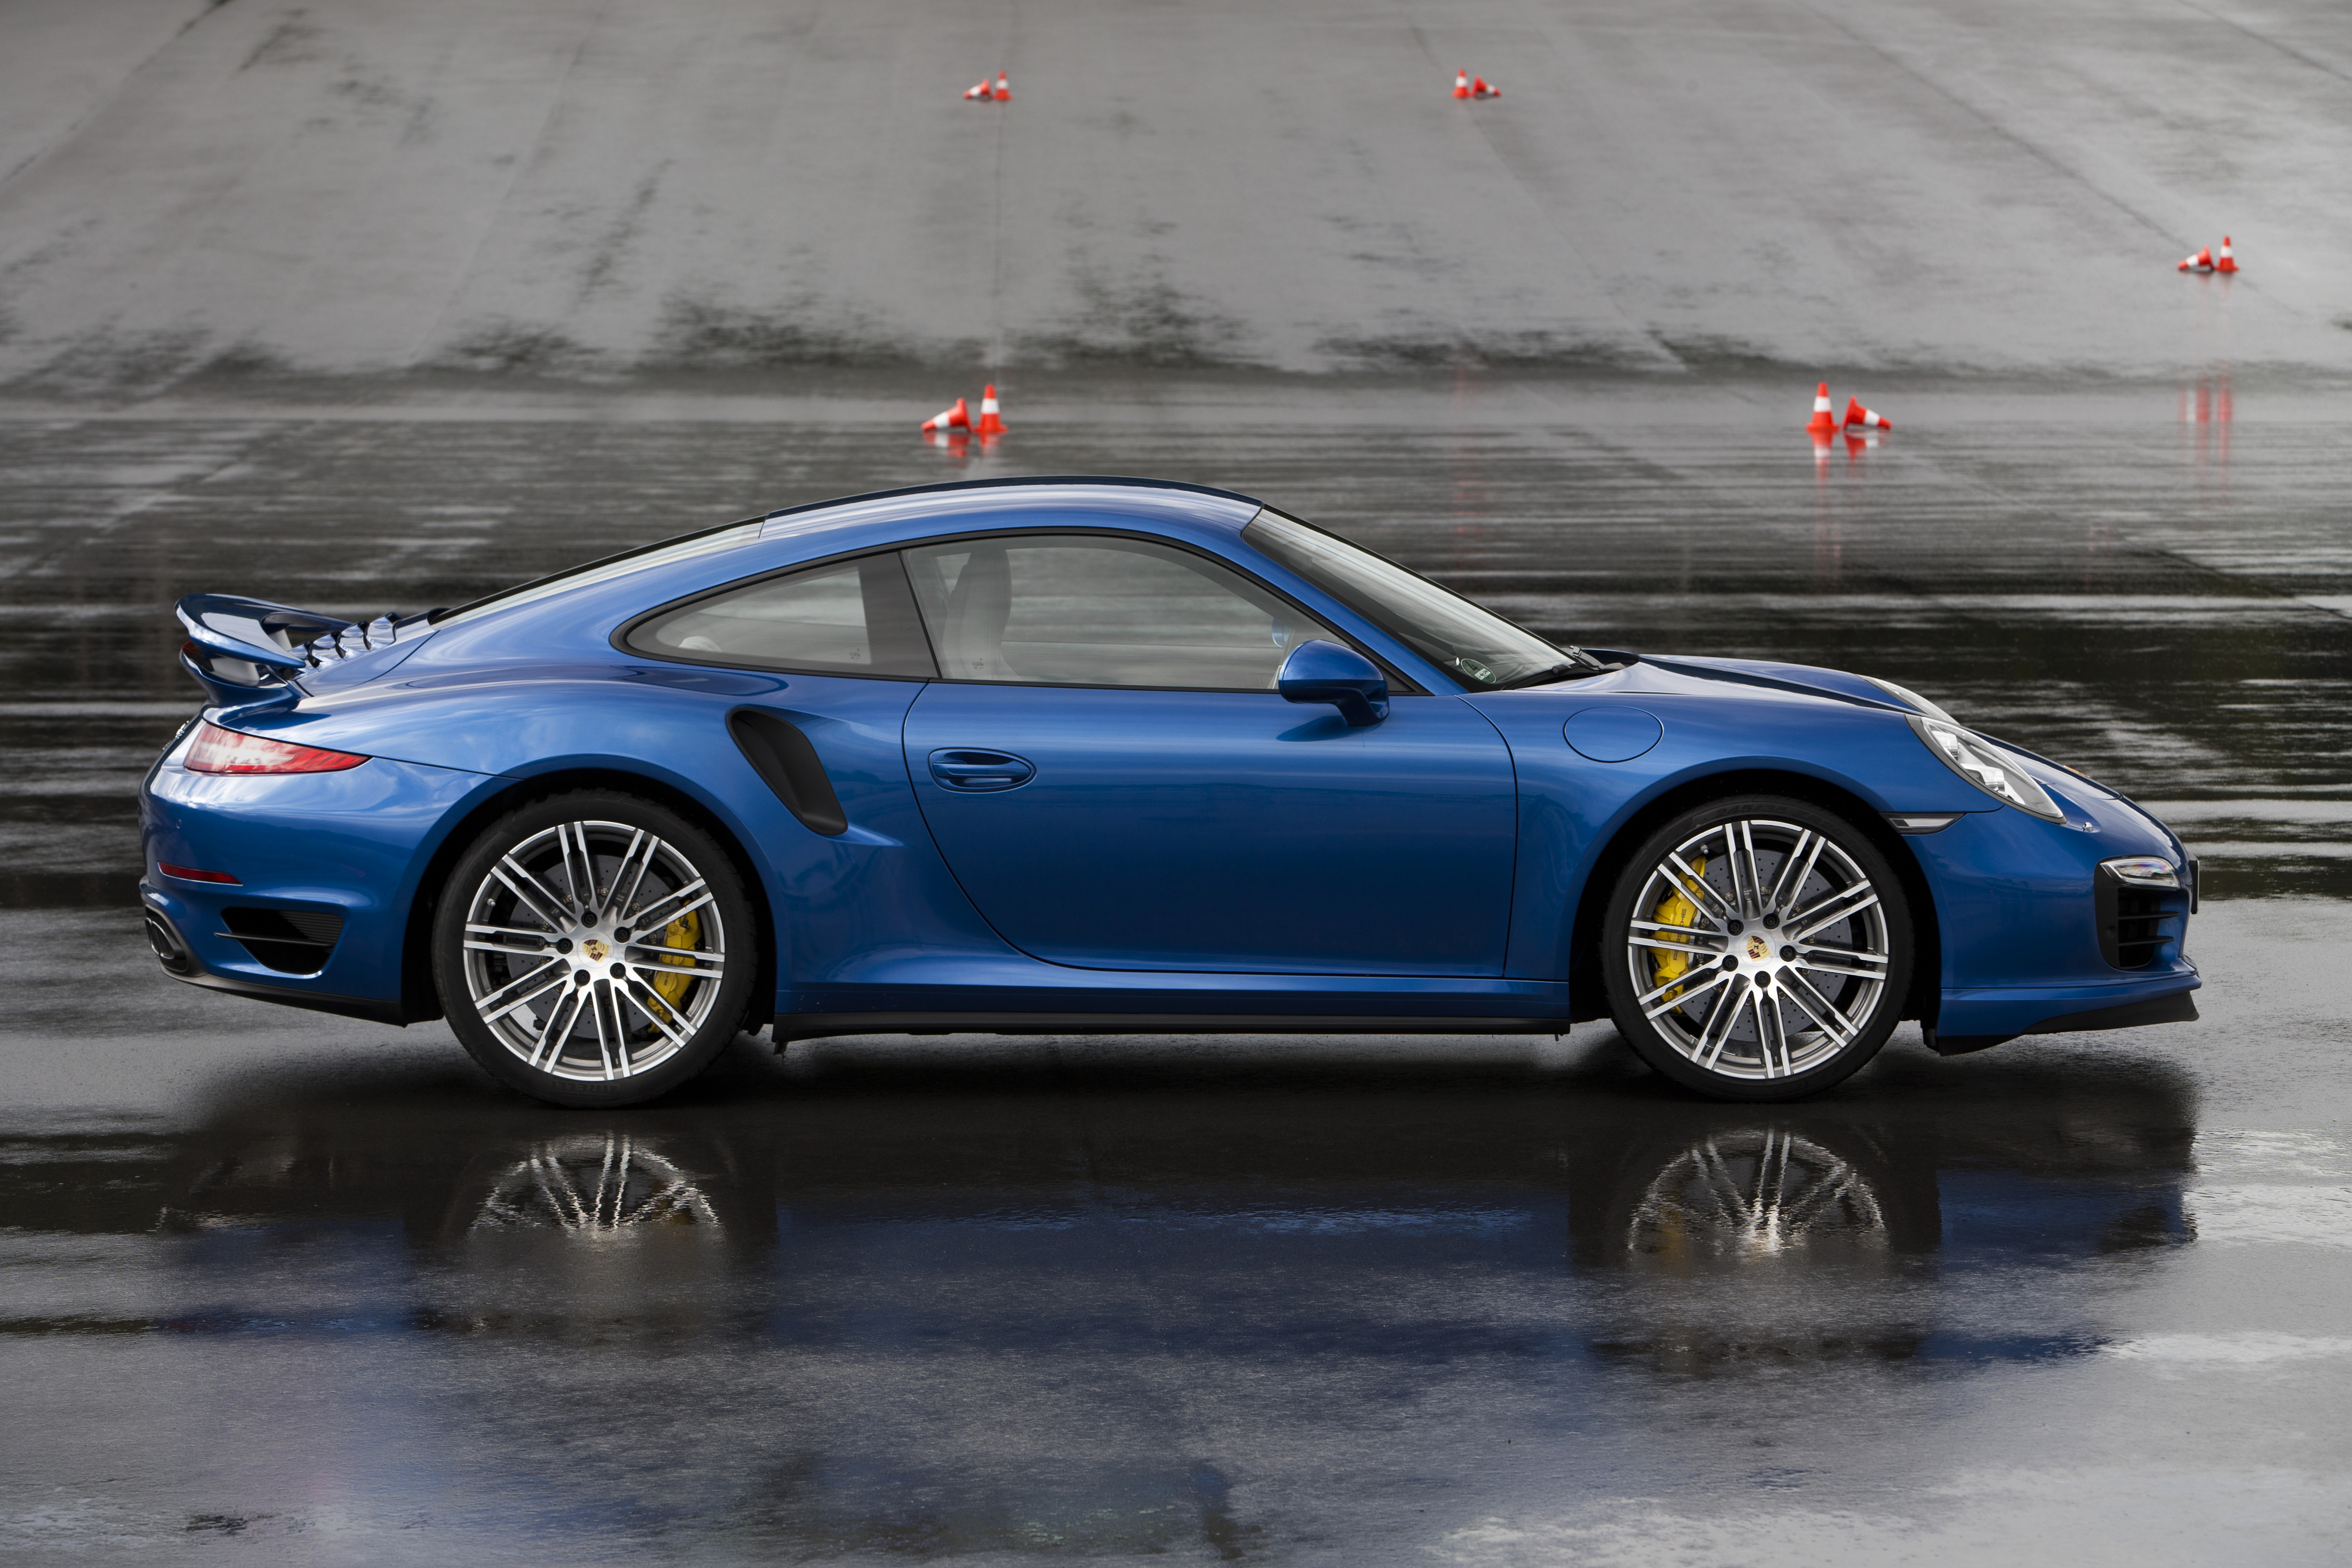 porsche 911 turbo wallpapers hd full hd pictures. Black Bedroom Furniture Sets. Home Design Ideas